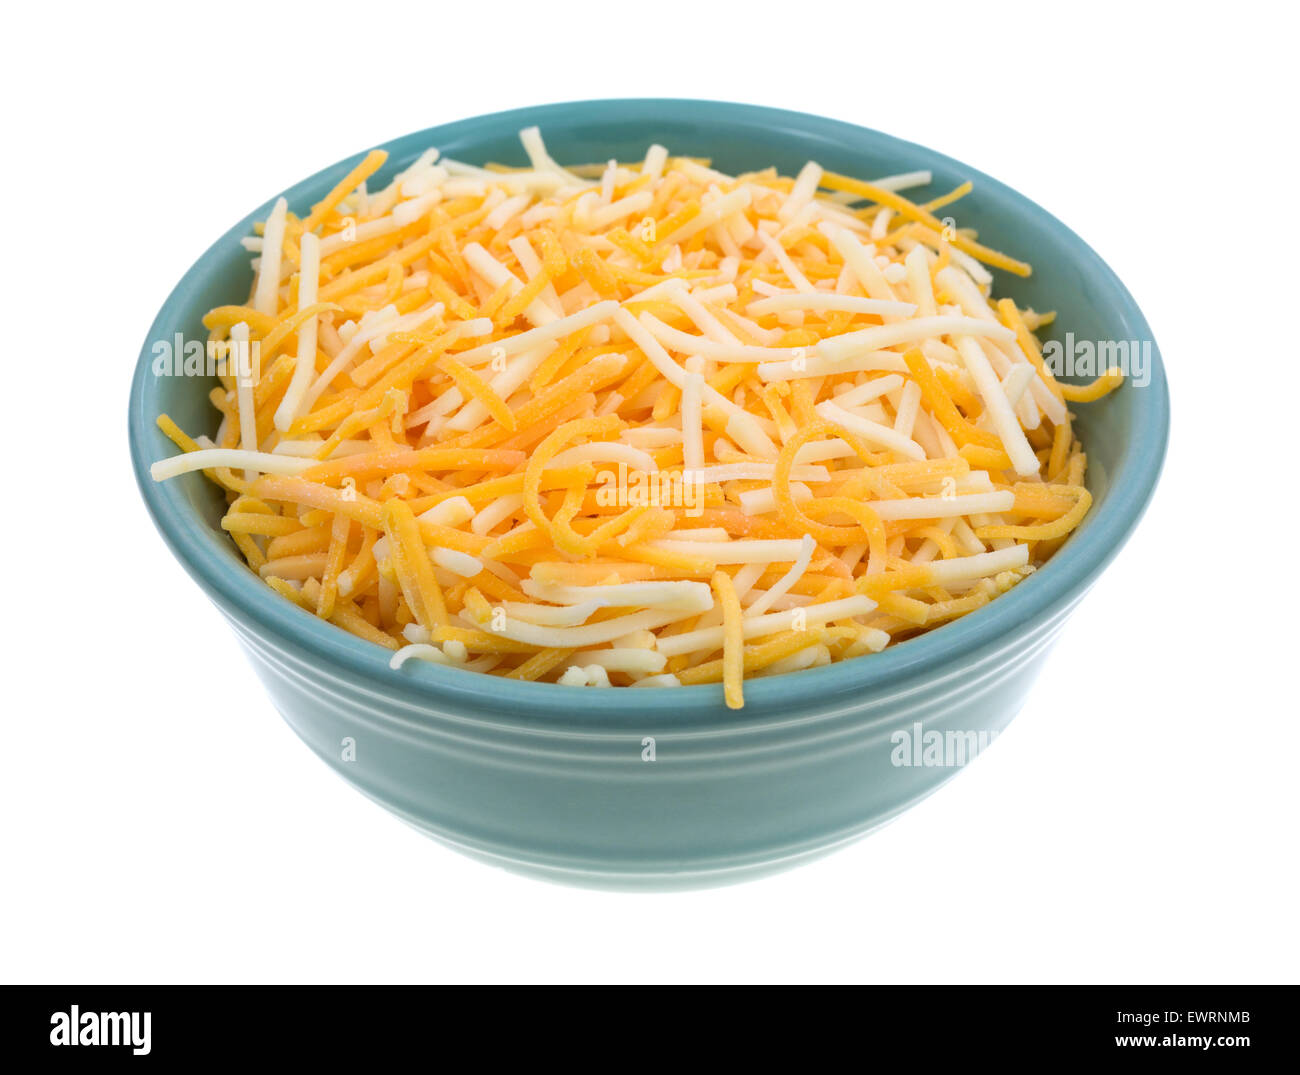 A small bowl filled with shredded white cheddar, sharp cheddar and mild cheddar cheeses isolated on a white background. - Stock Image